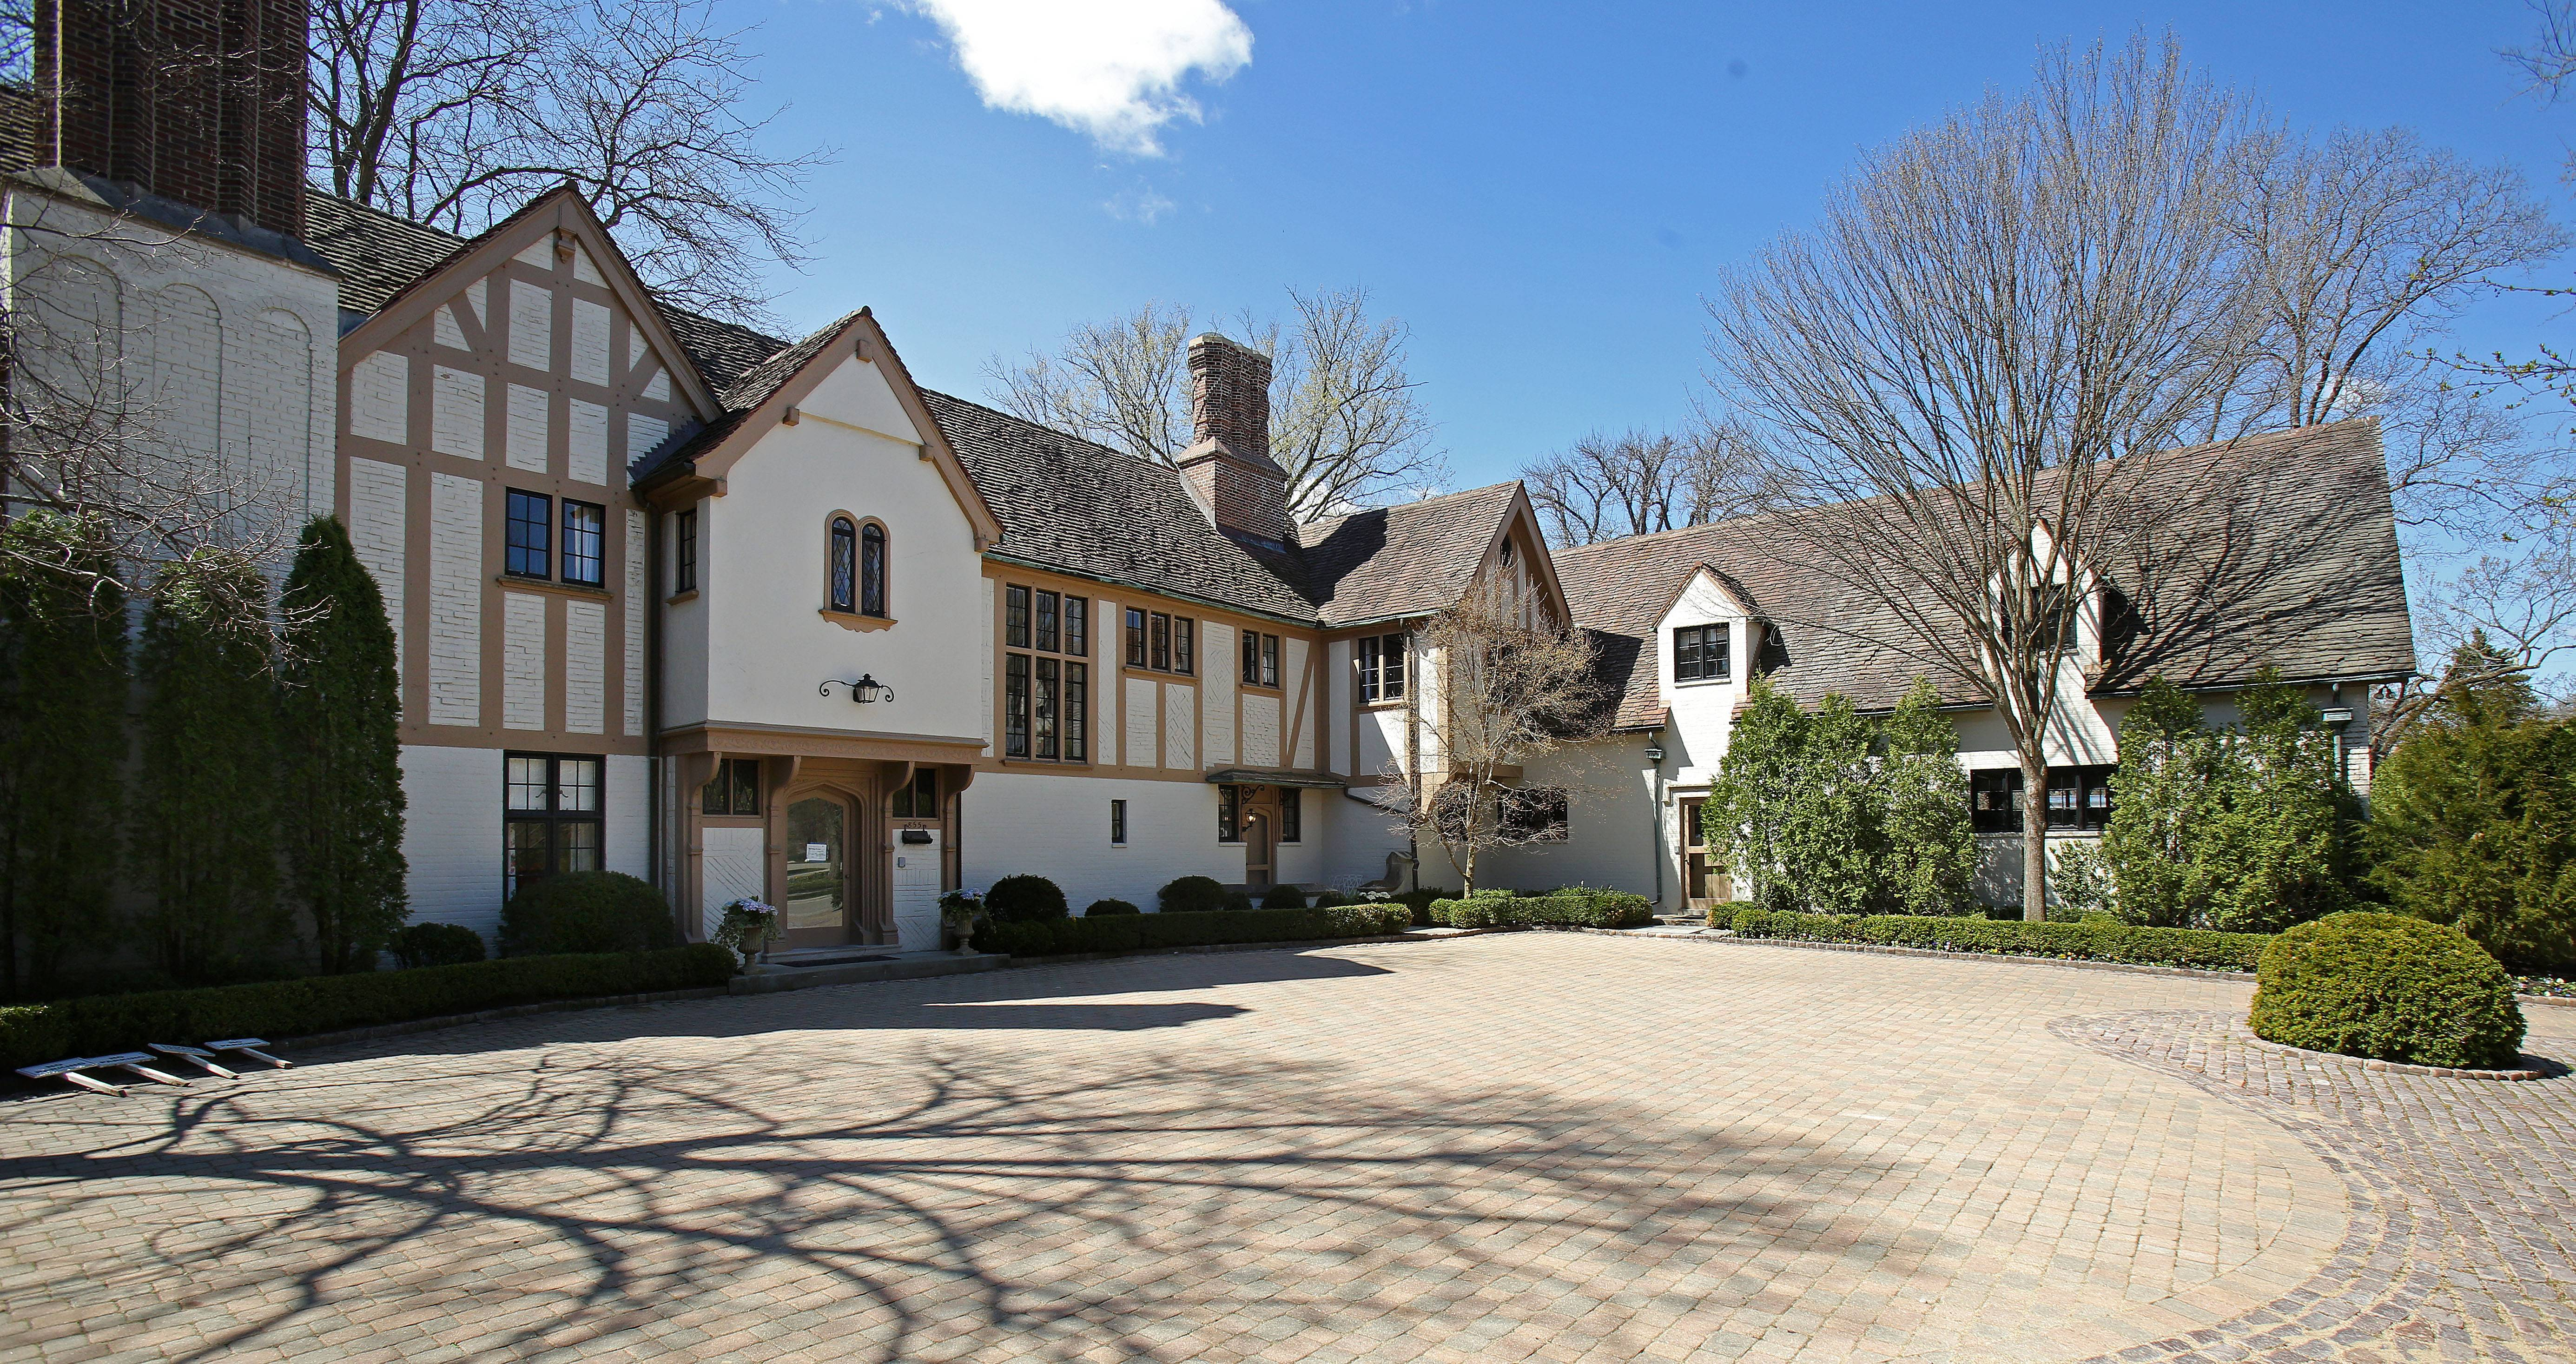 The Lake Forest Showhouse & Gardens is at the estate of the late movie icon John Hughes.